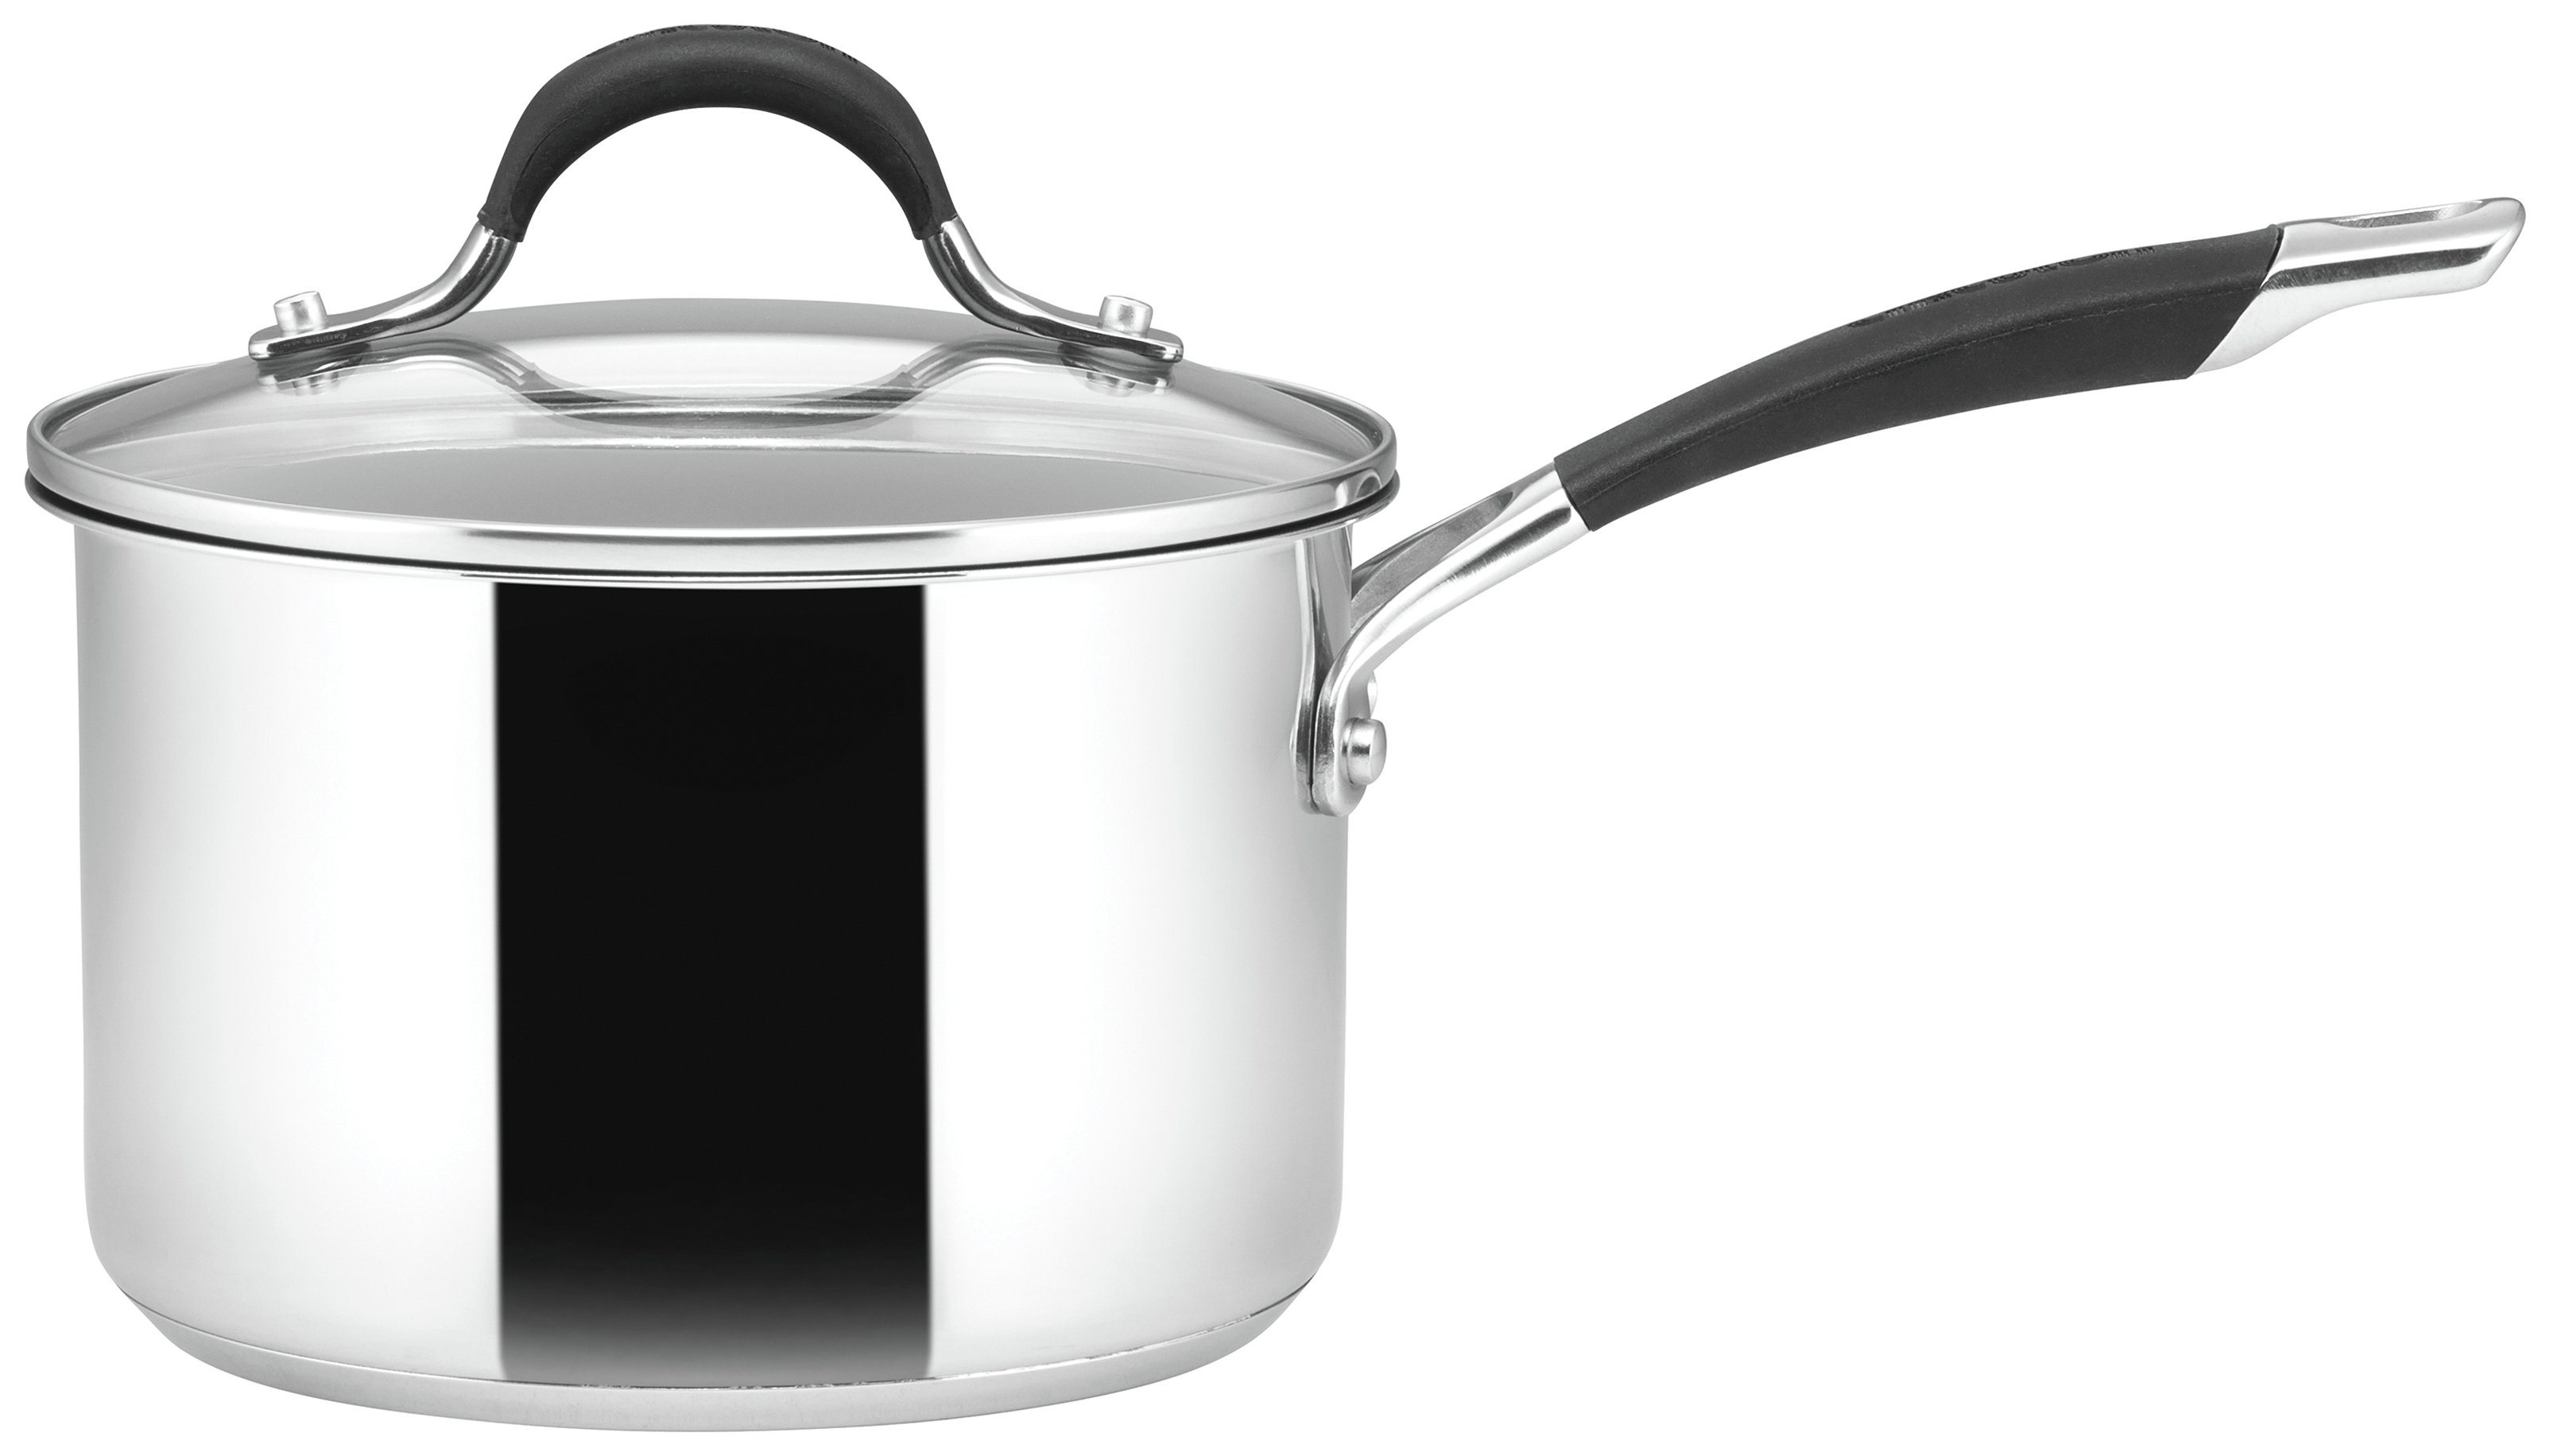 Image of Circulon Momentum 16cm Stainless Steel Covered Saucepan.